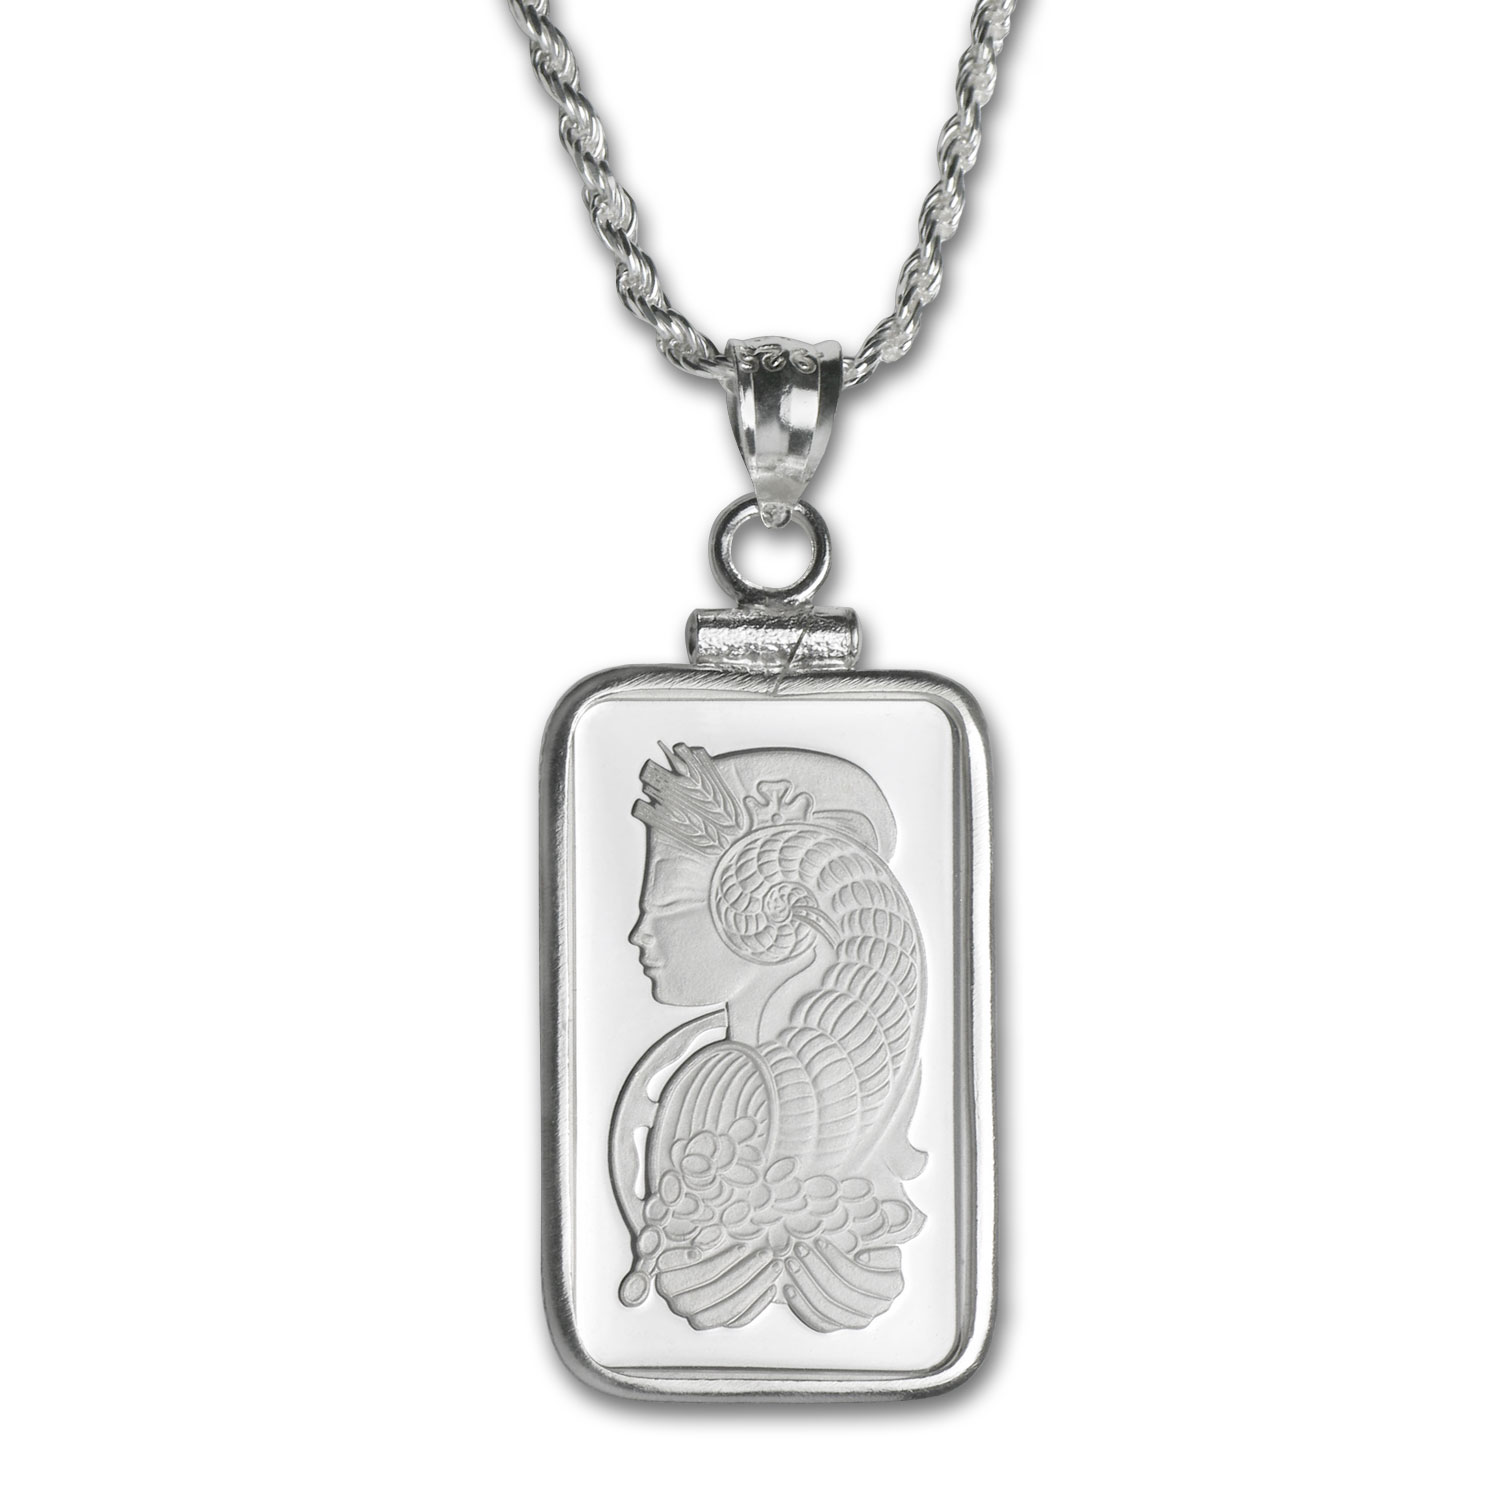 5 gram Silver - PAMP Suisse Fortuna Pendant (w/Chain)